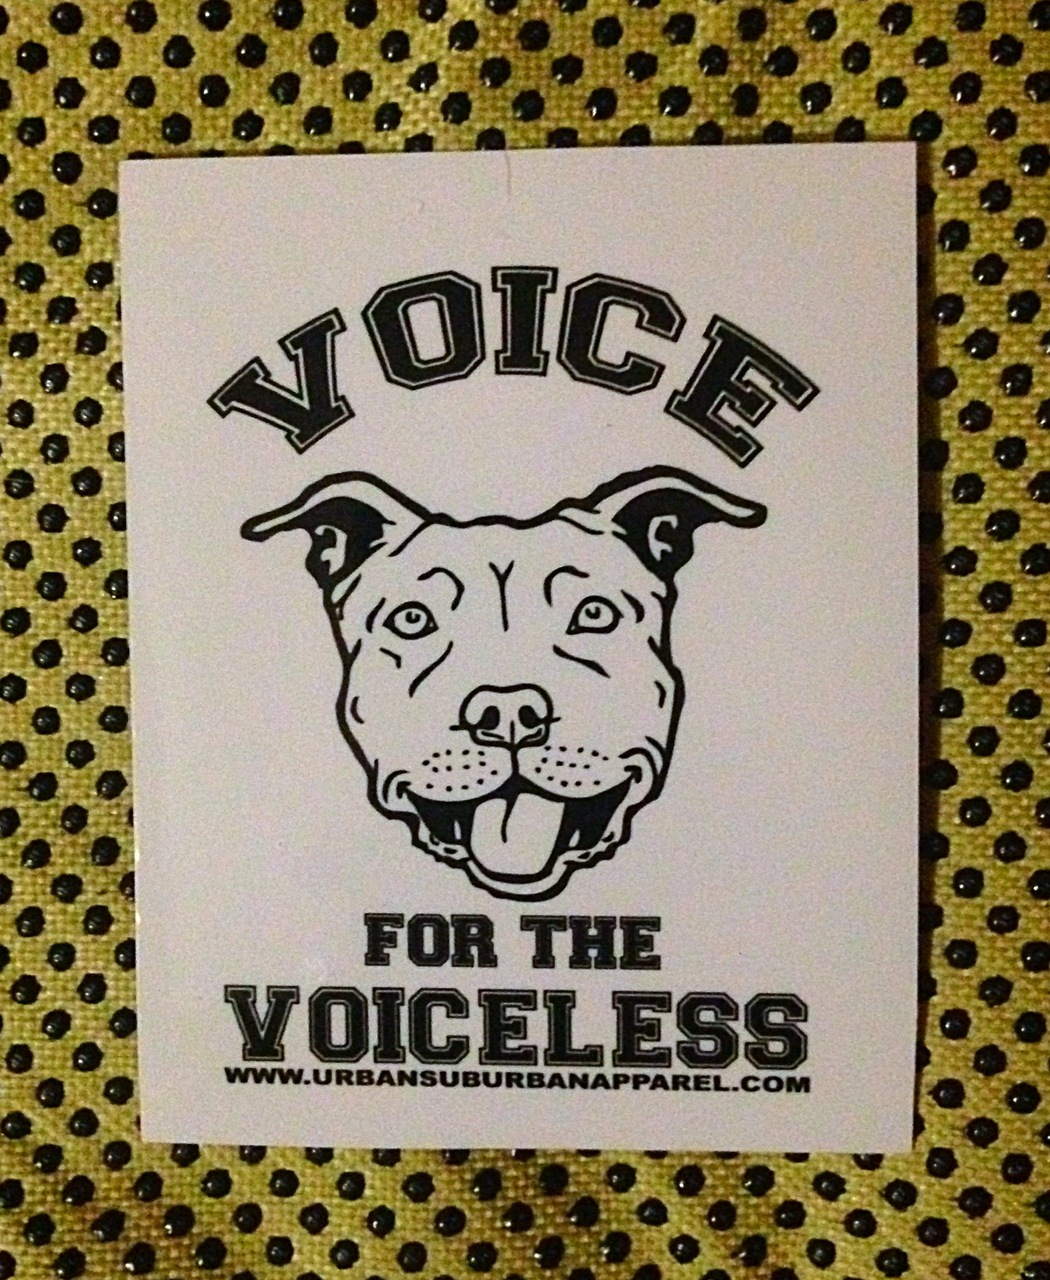 VOICE FOR THE VOICELESS Sticker Packs